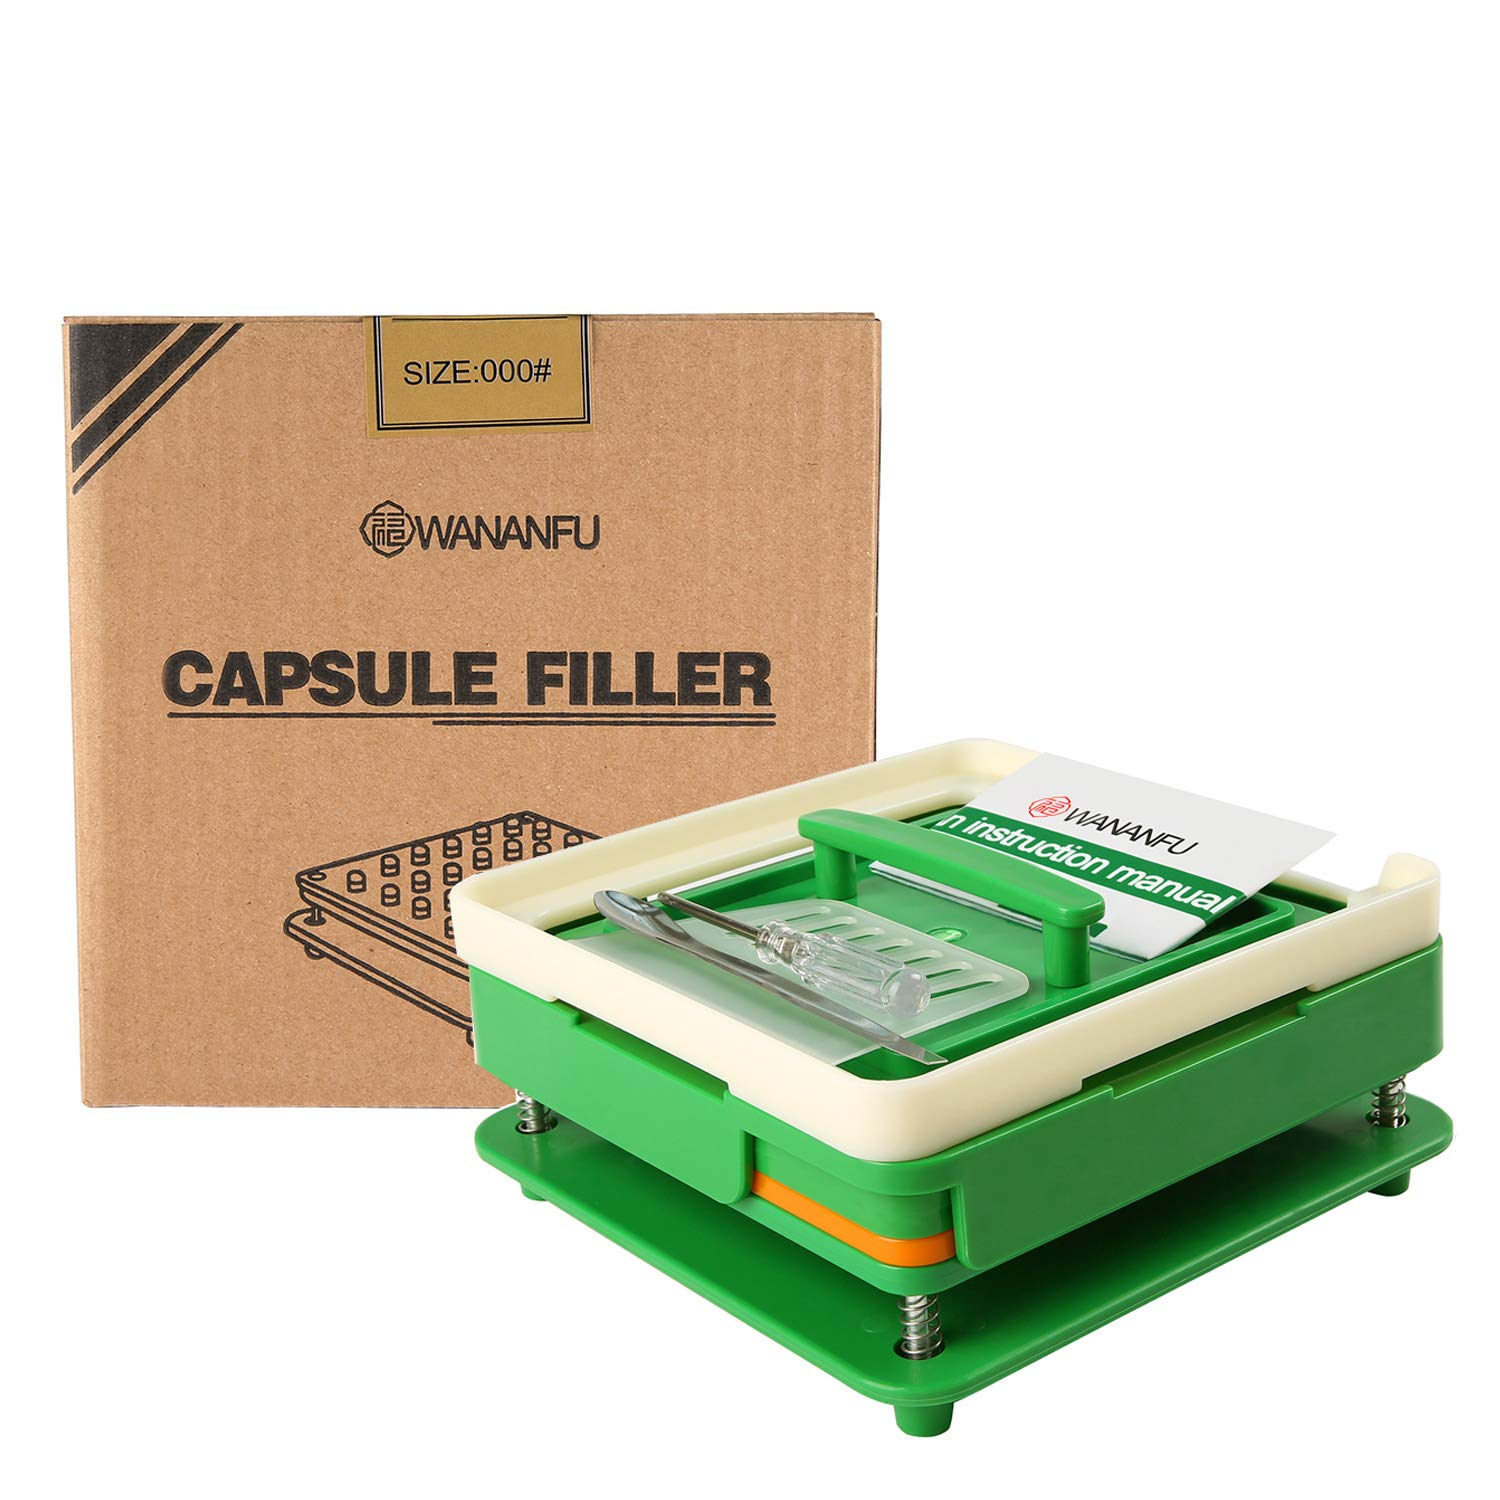 100 Hole (000#) Capsule Holder with Tamper for Size 000 Empty Capsules Holding Tray Pill Dispensers & Reminders -Green by wananfu (Image #2)